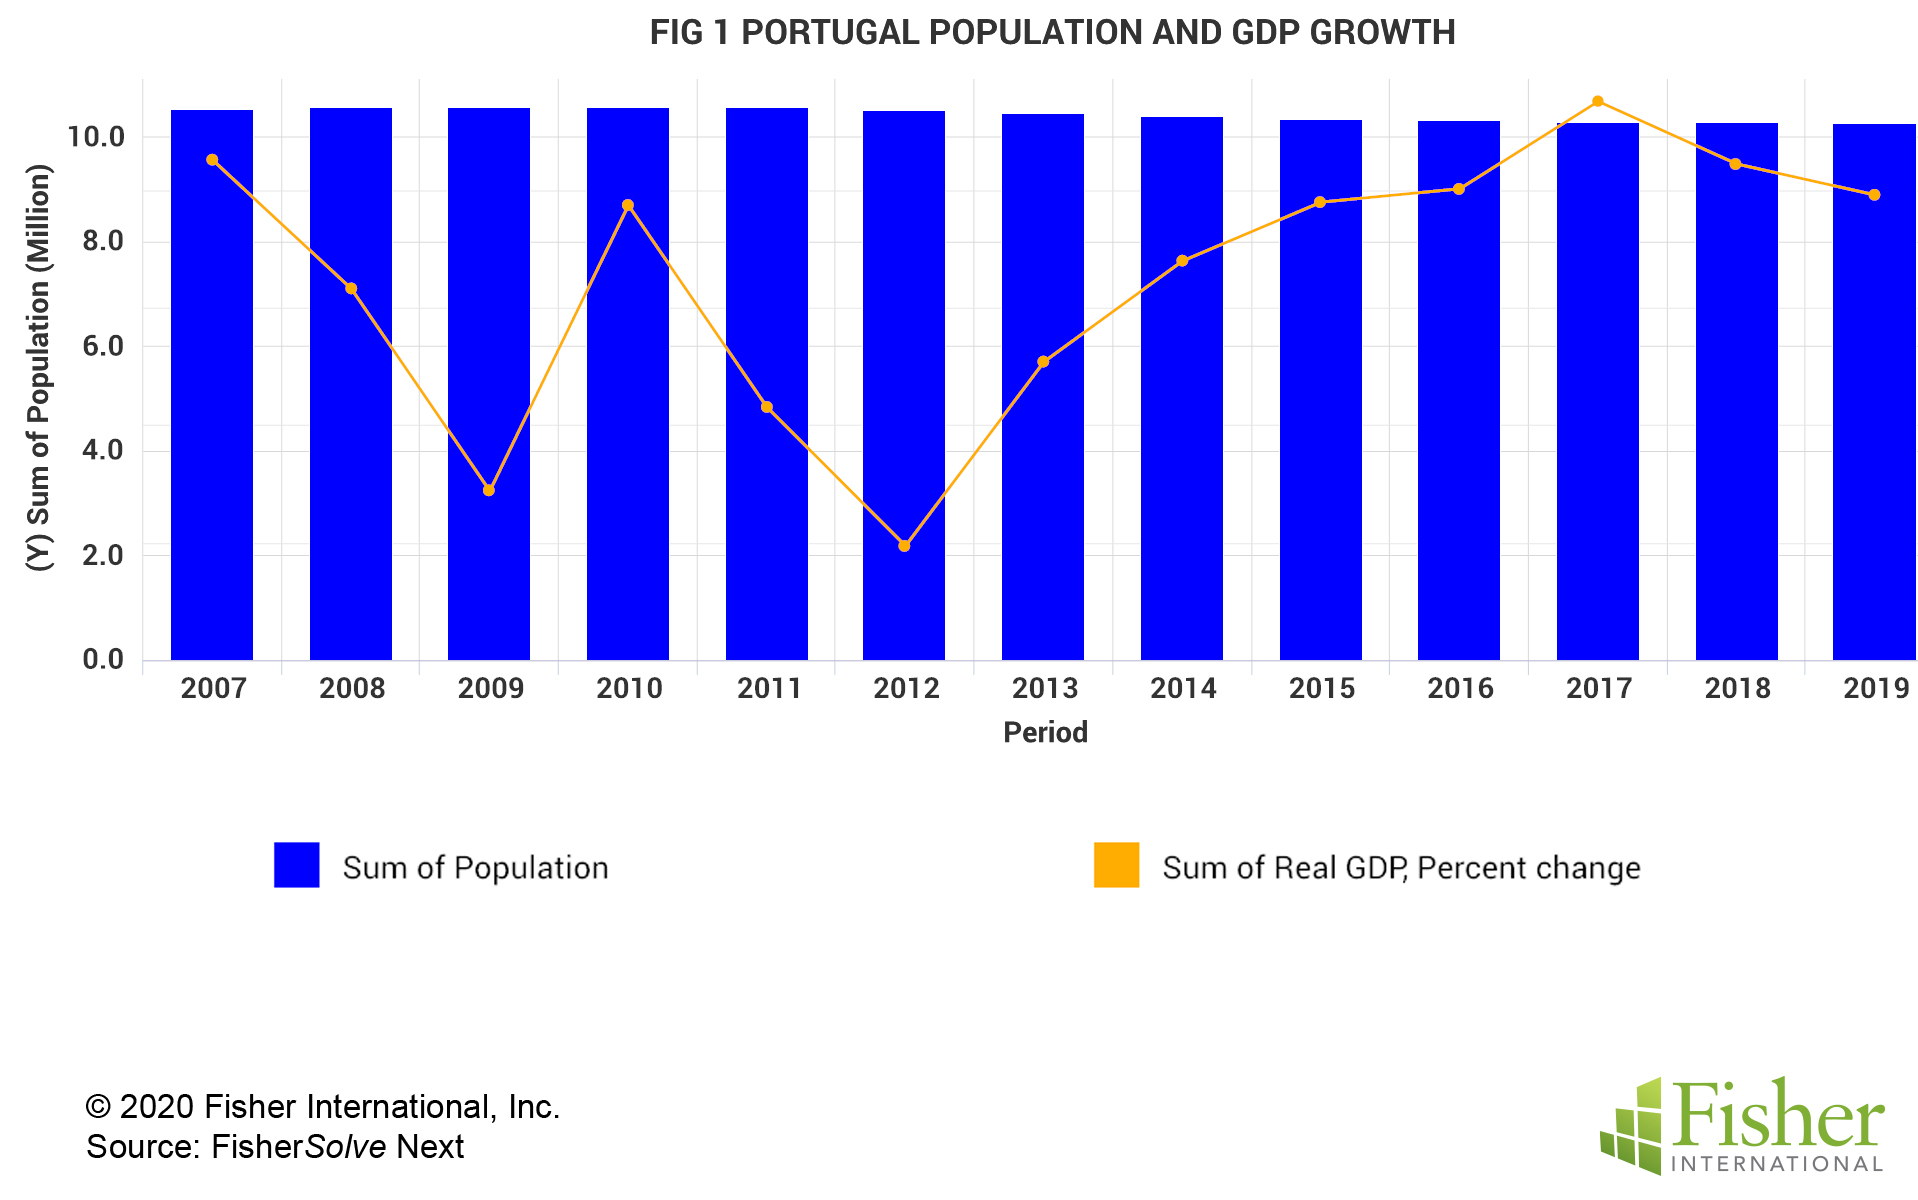 Fig 1 Portugal Population and GDP Growth